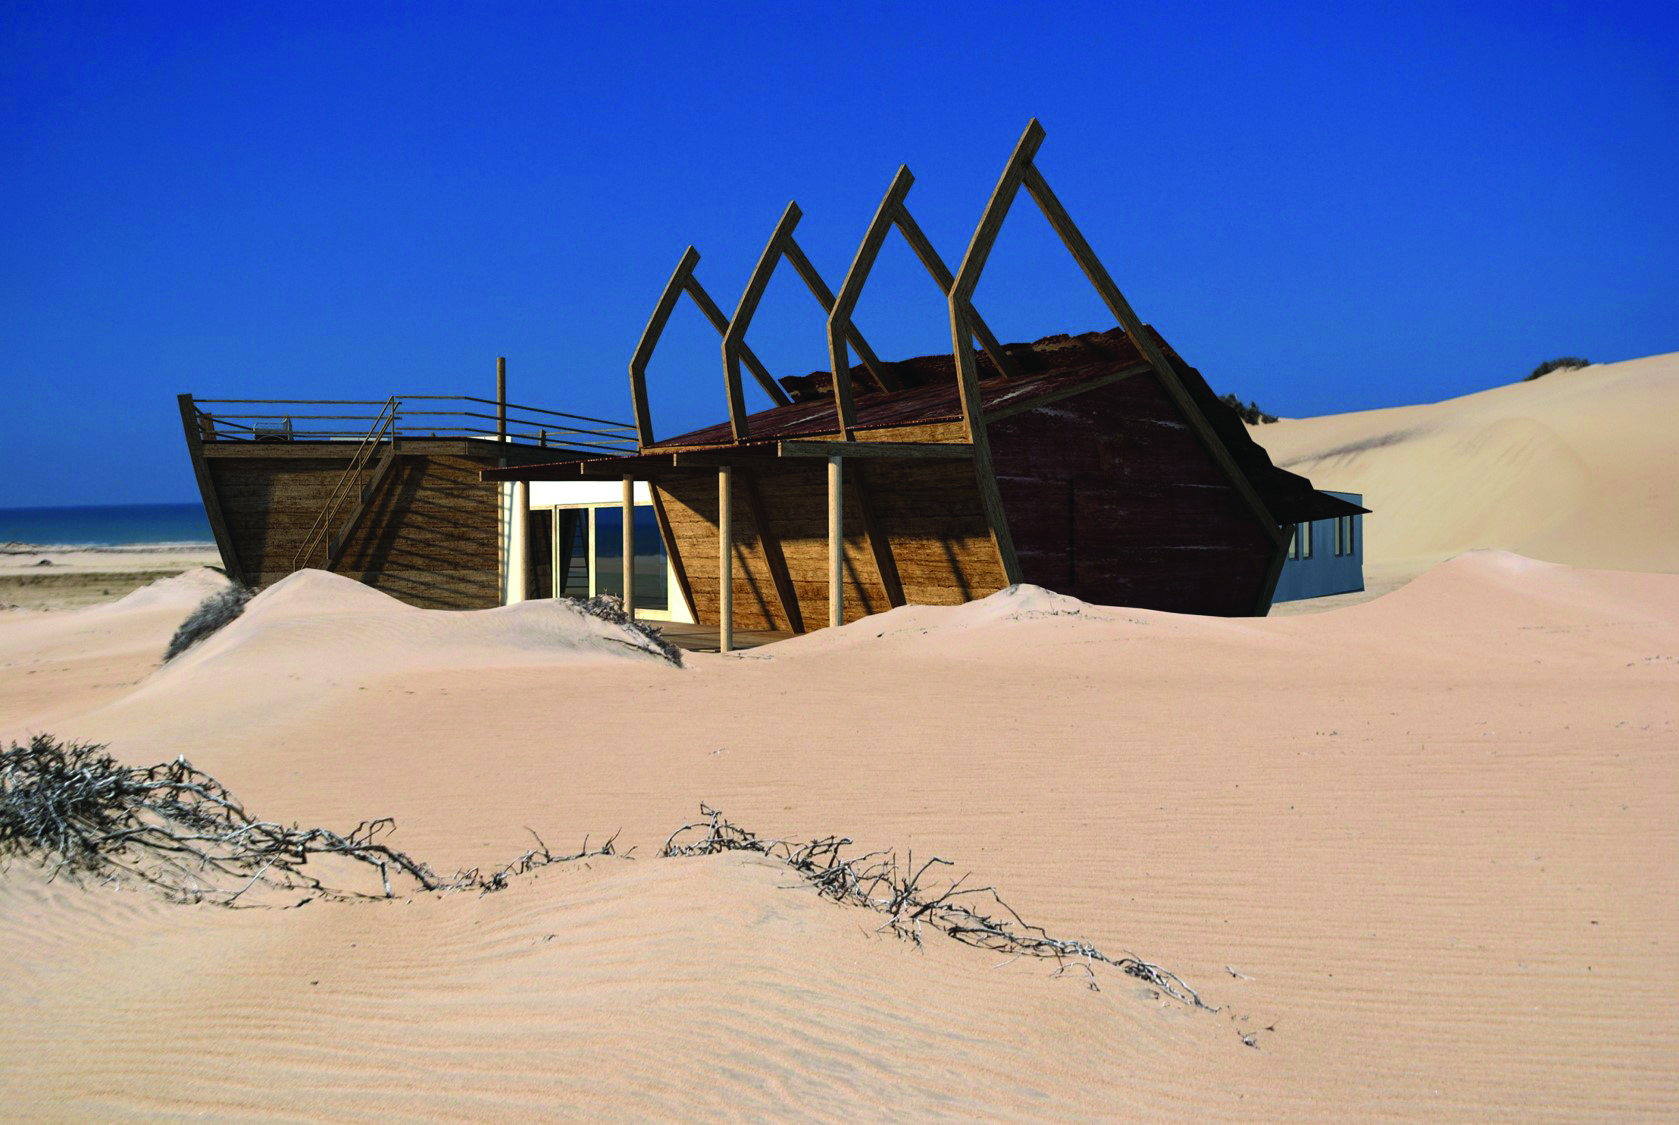 50 New Hotel Openings For 2018 | Africa | Shipwreck Lodge - Skeleton Coast, Namibia